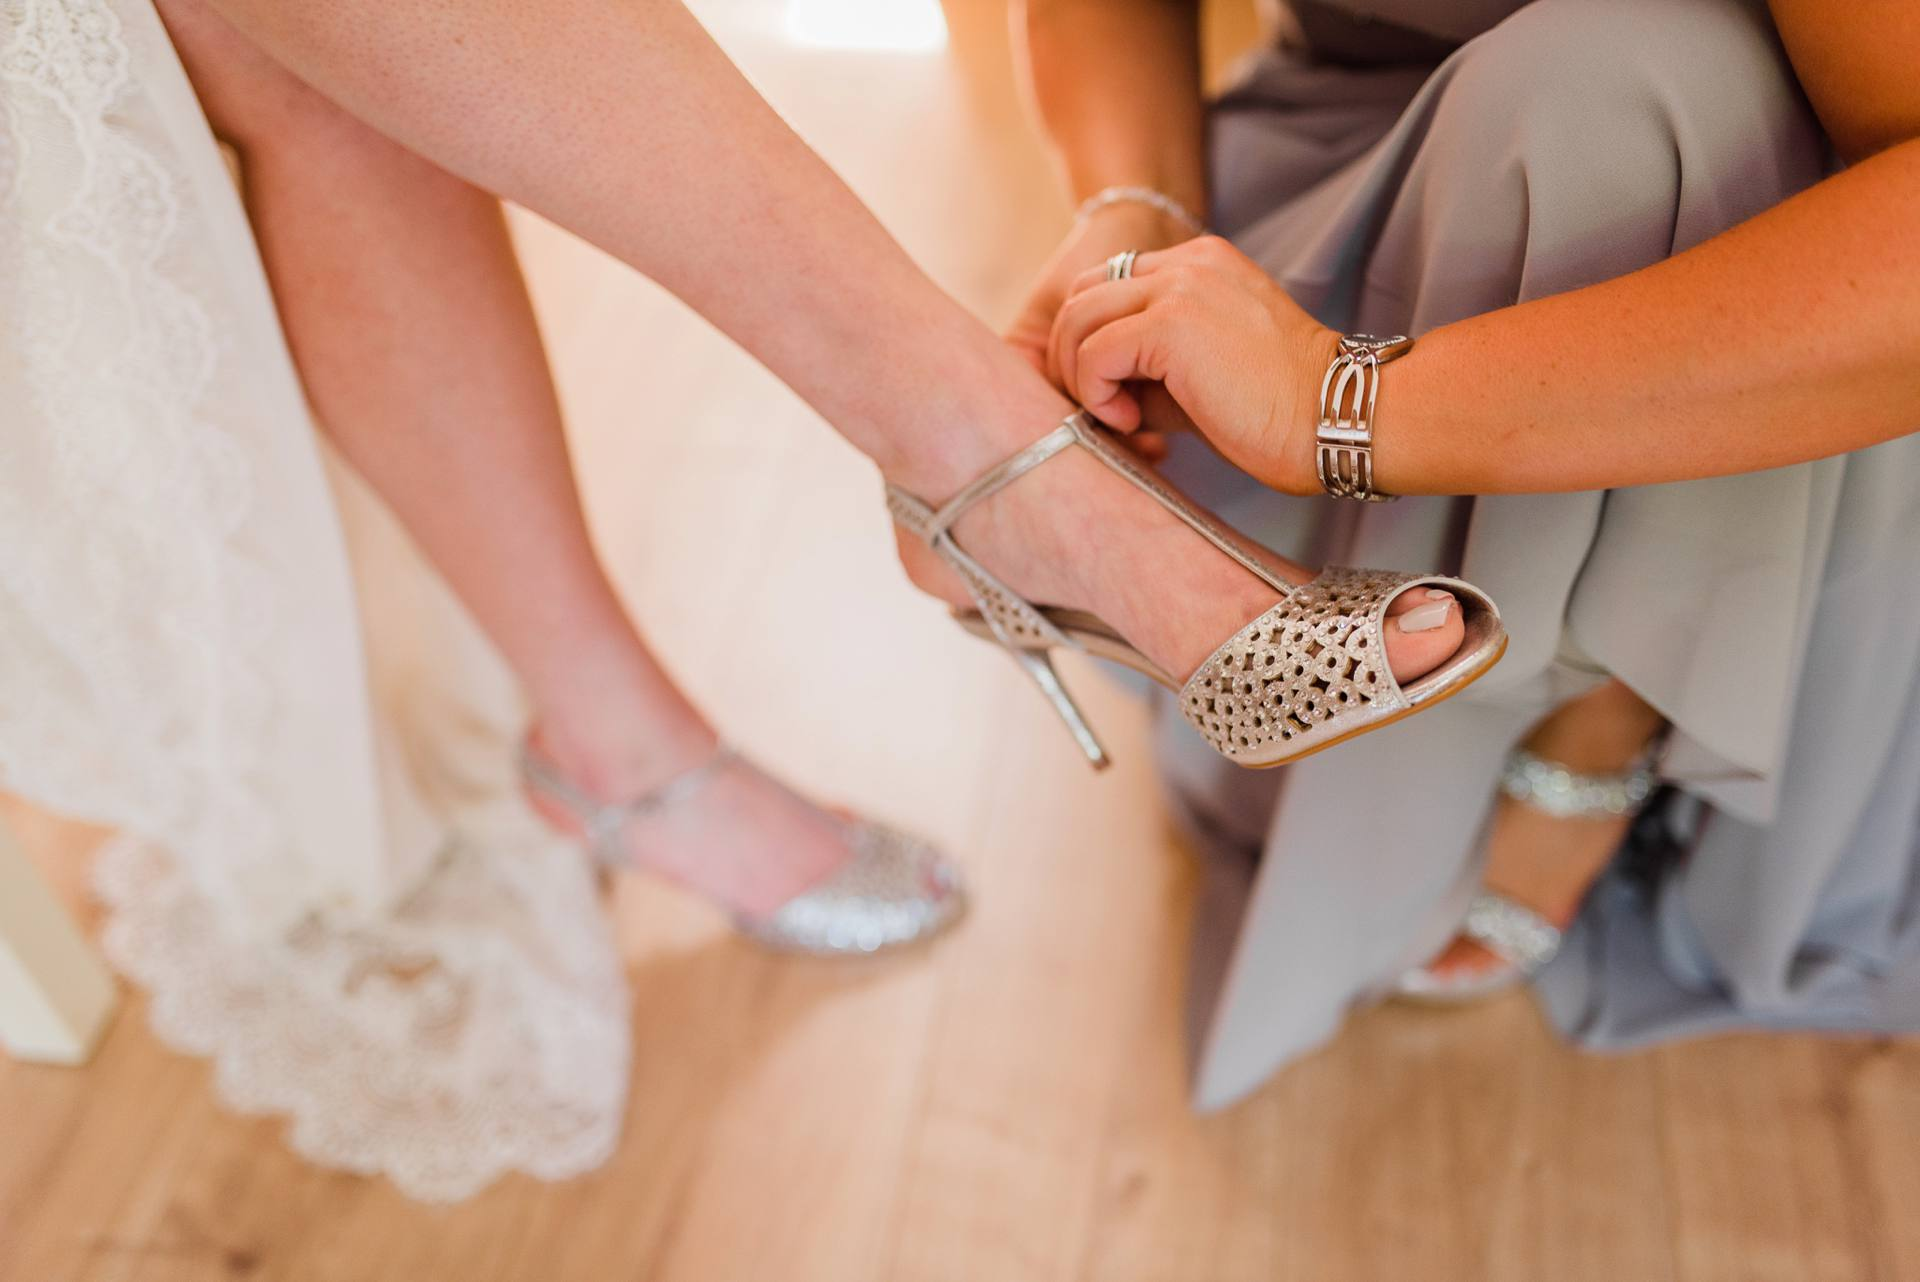 Jenny Packham shoes being put on bride